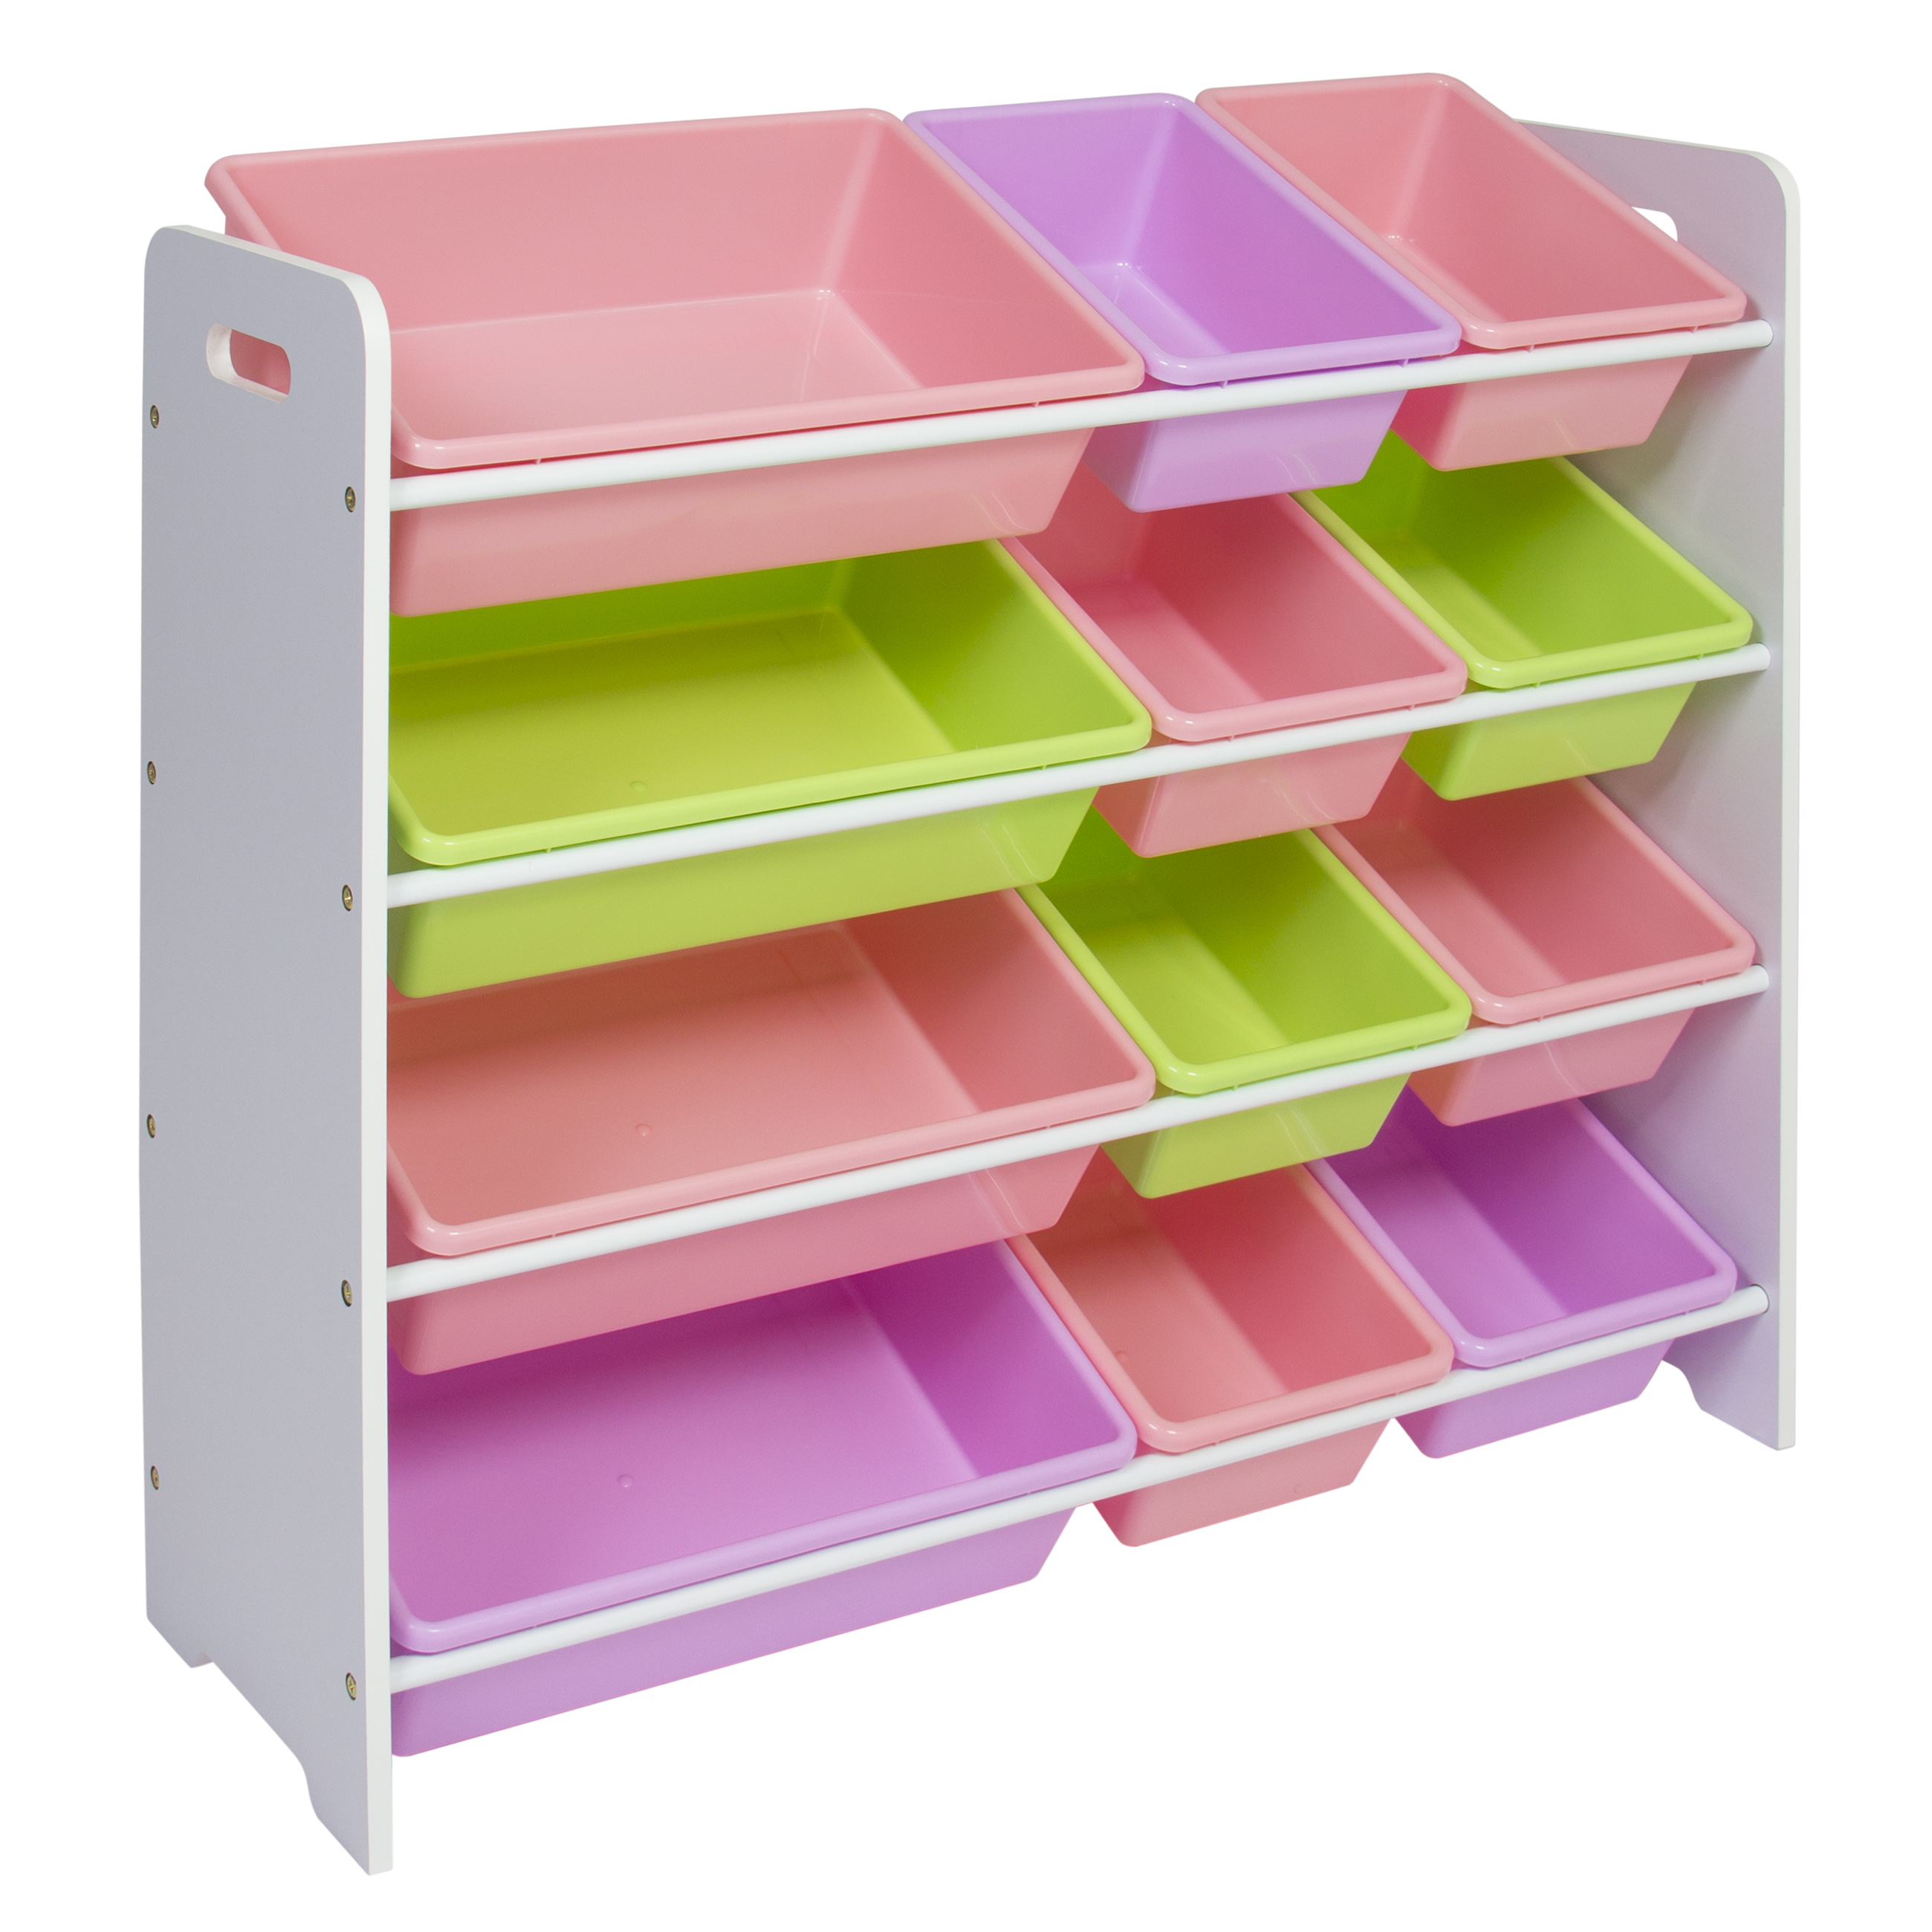 Best Choice Products Toy Bin Organizer Kids Childrens Storage Box Playroom Bedroom Shelf Drawer - Pastel Colors